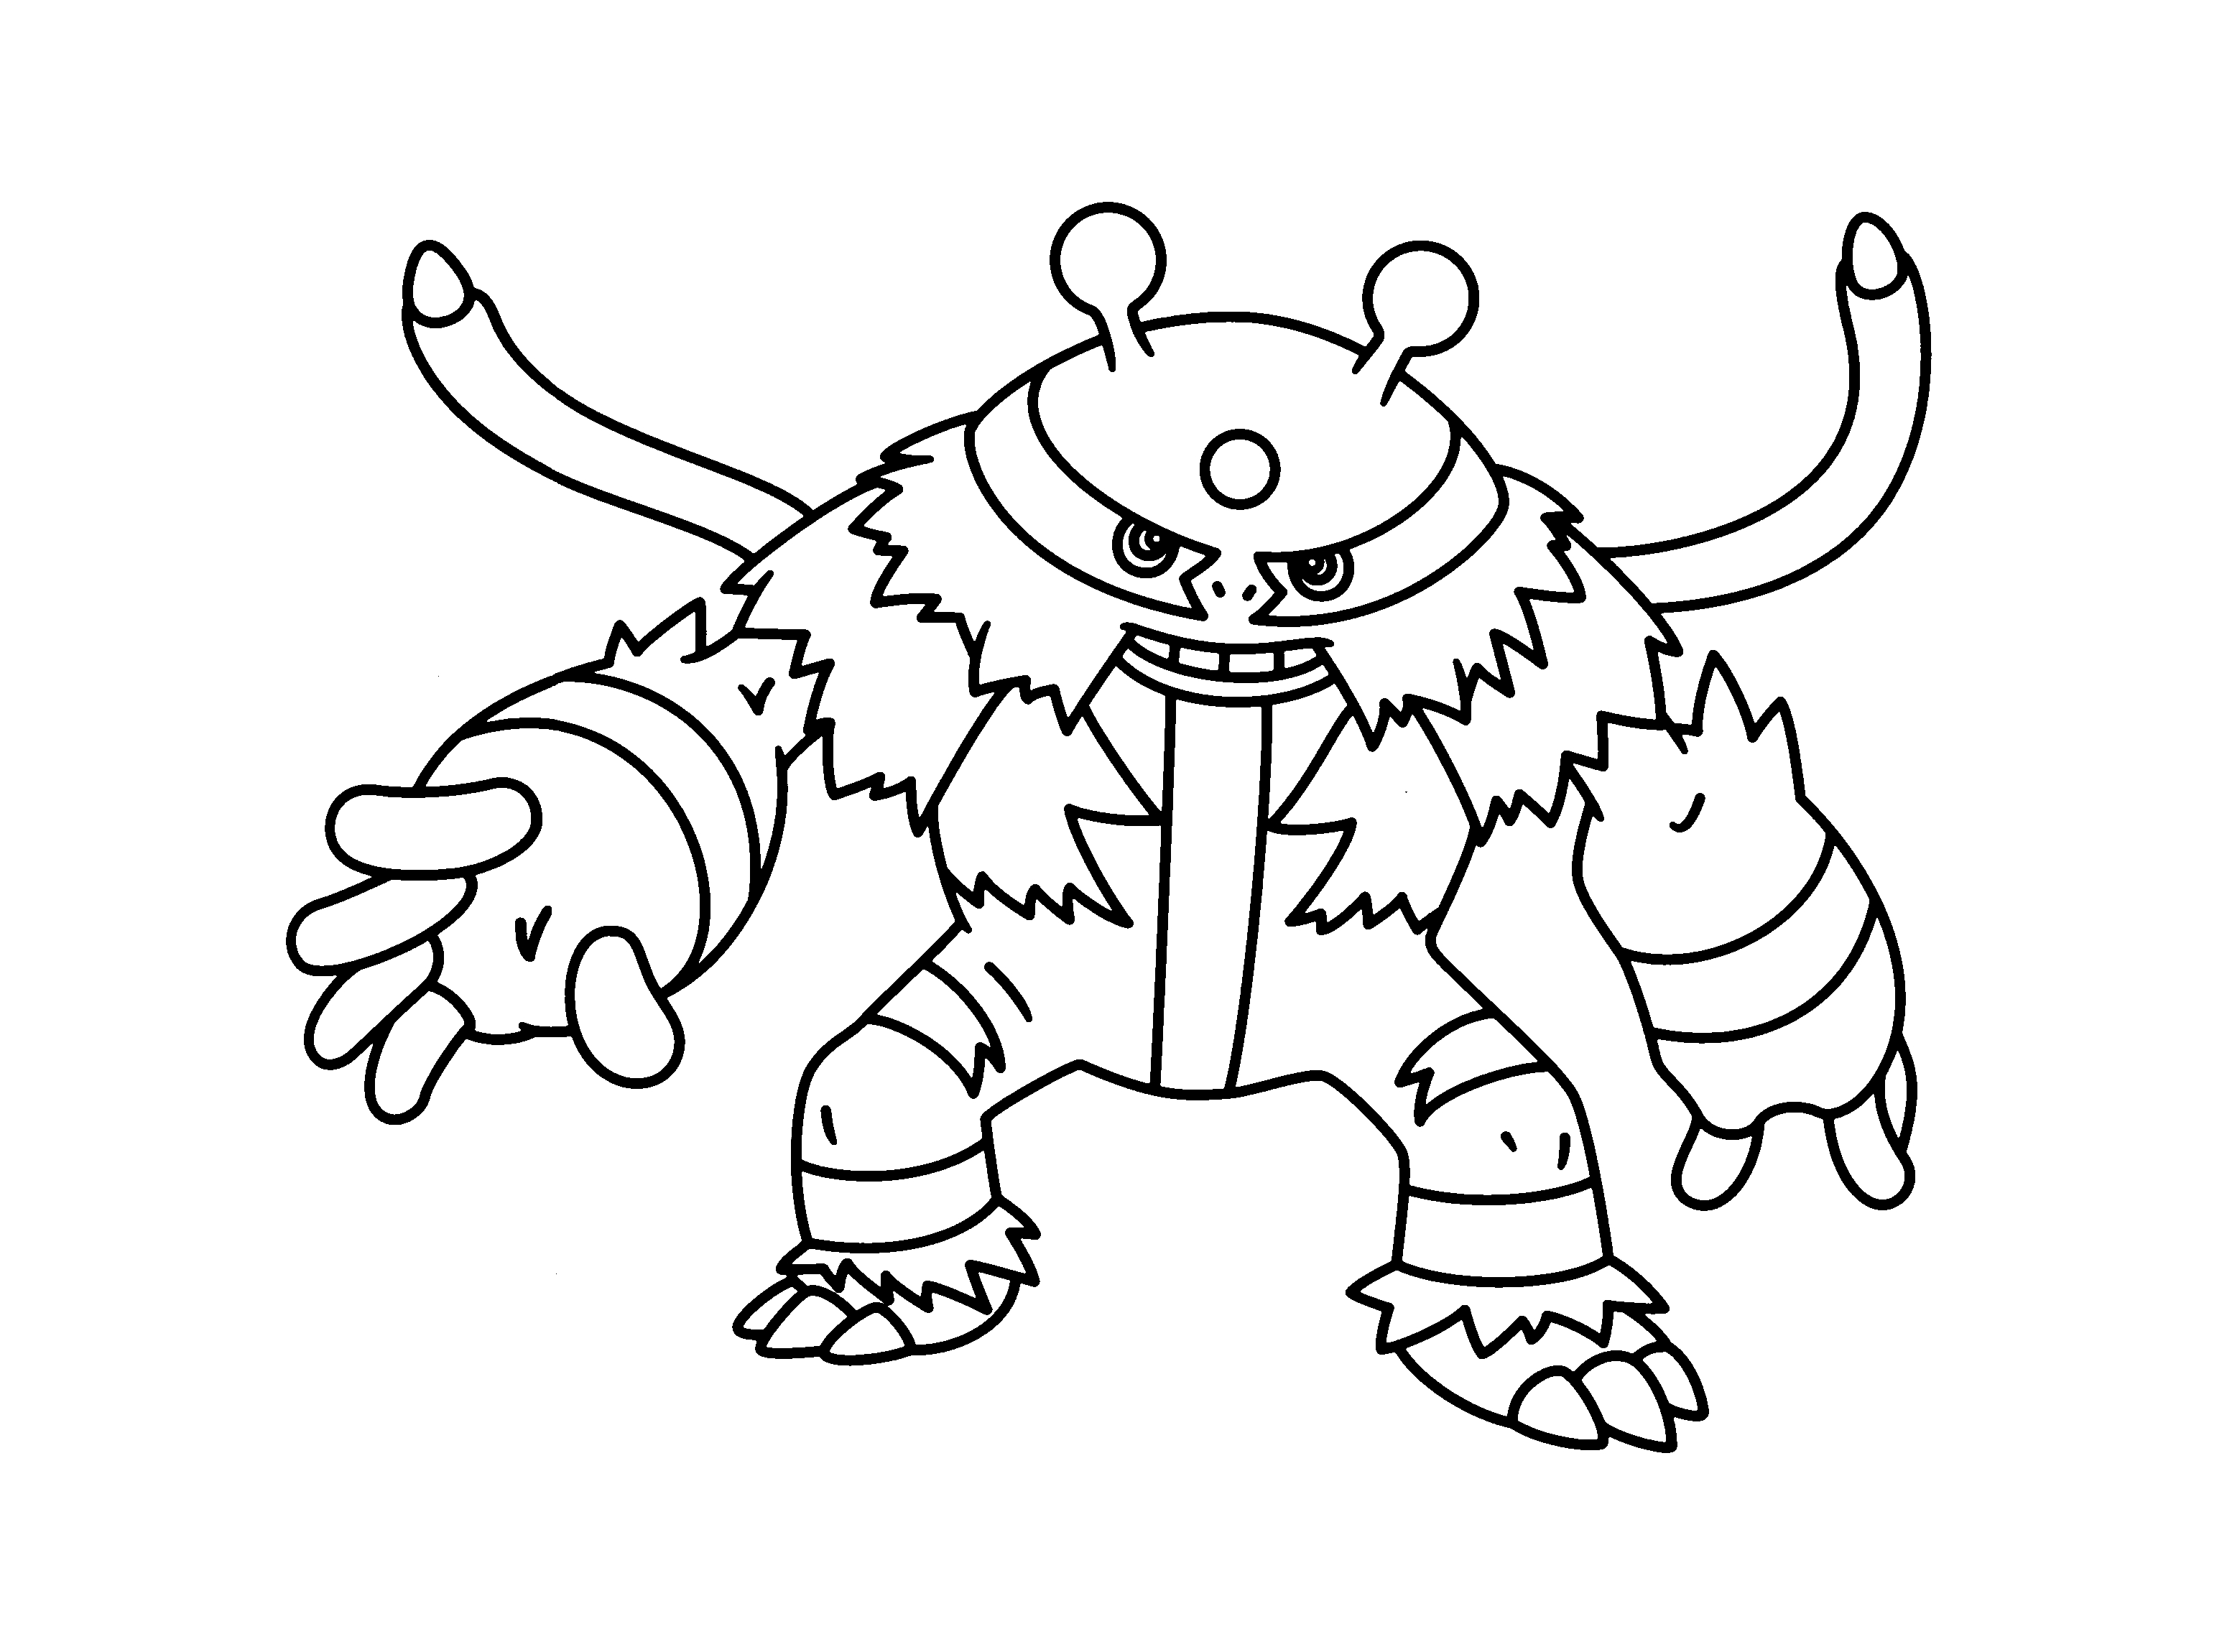 Coloriage lekable pokemon imprimer - Coloriage imprime ...